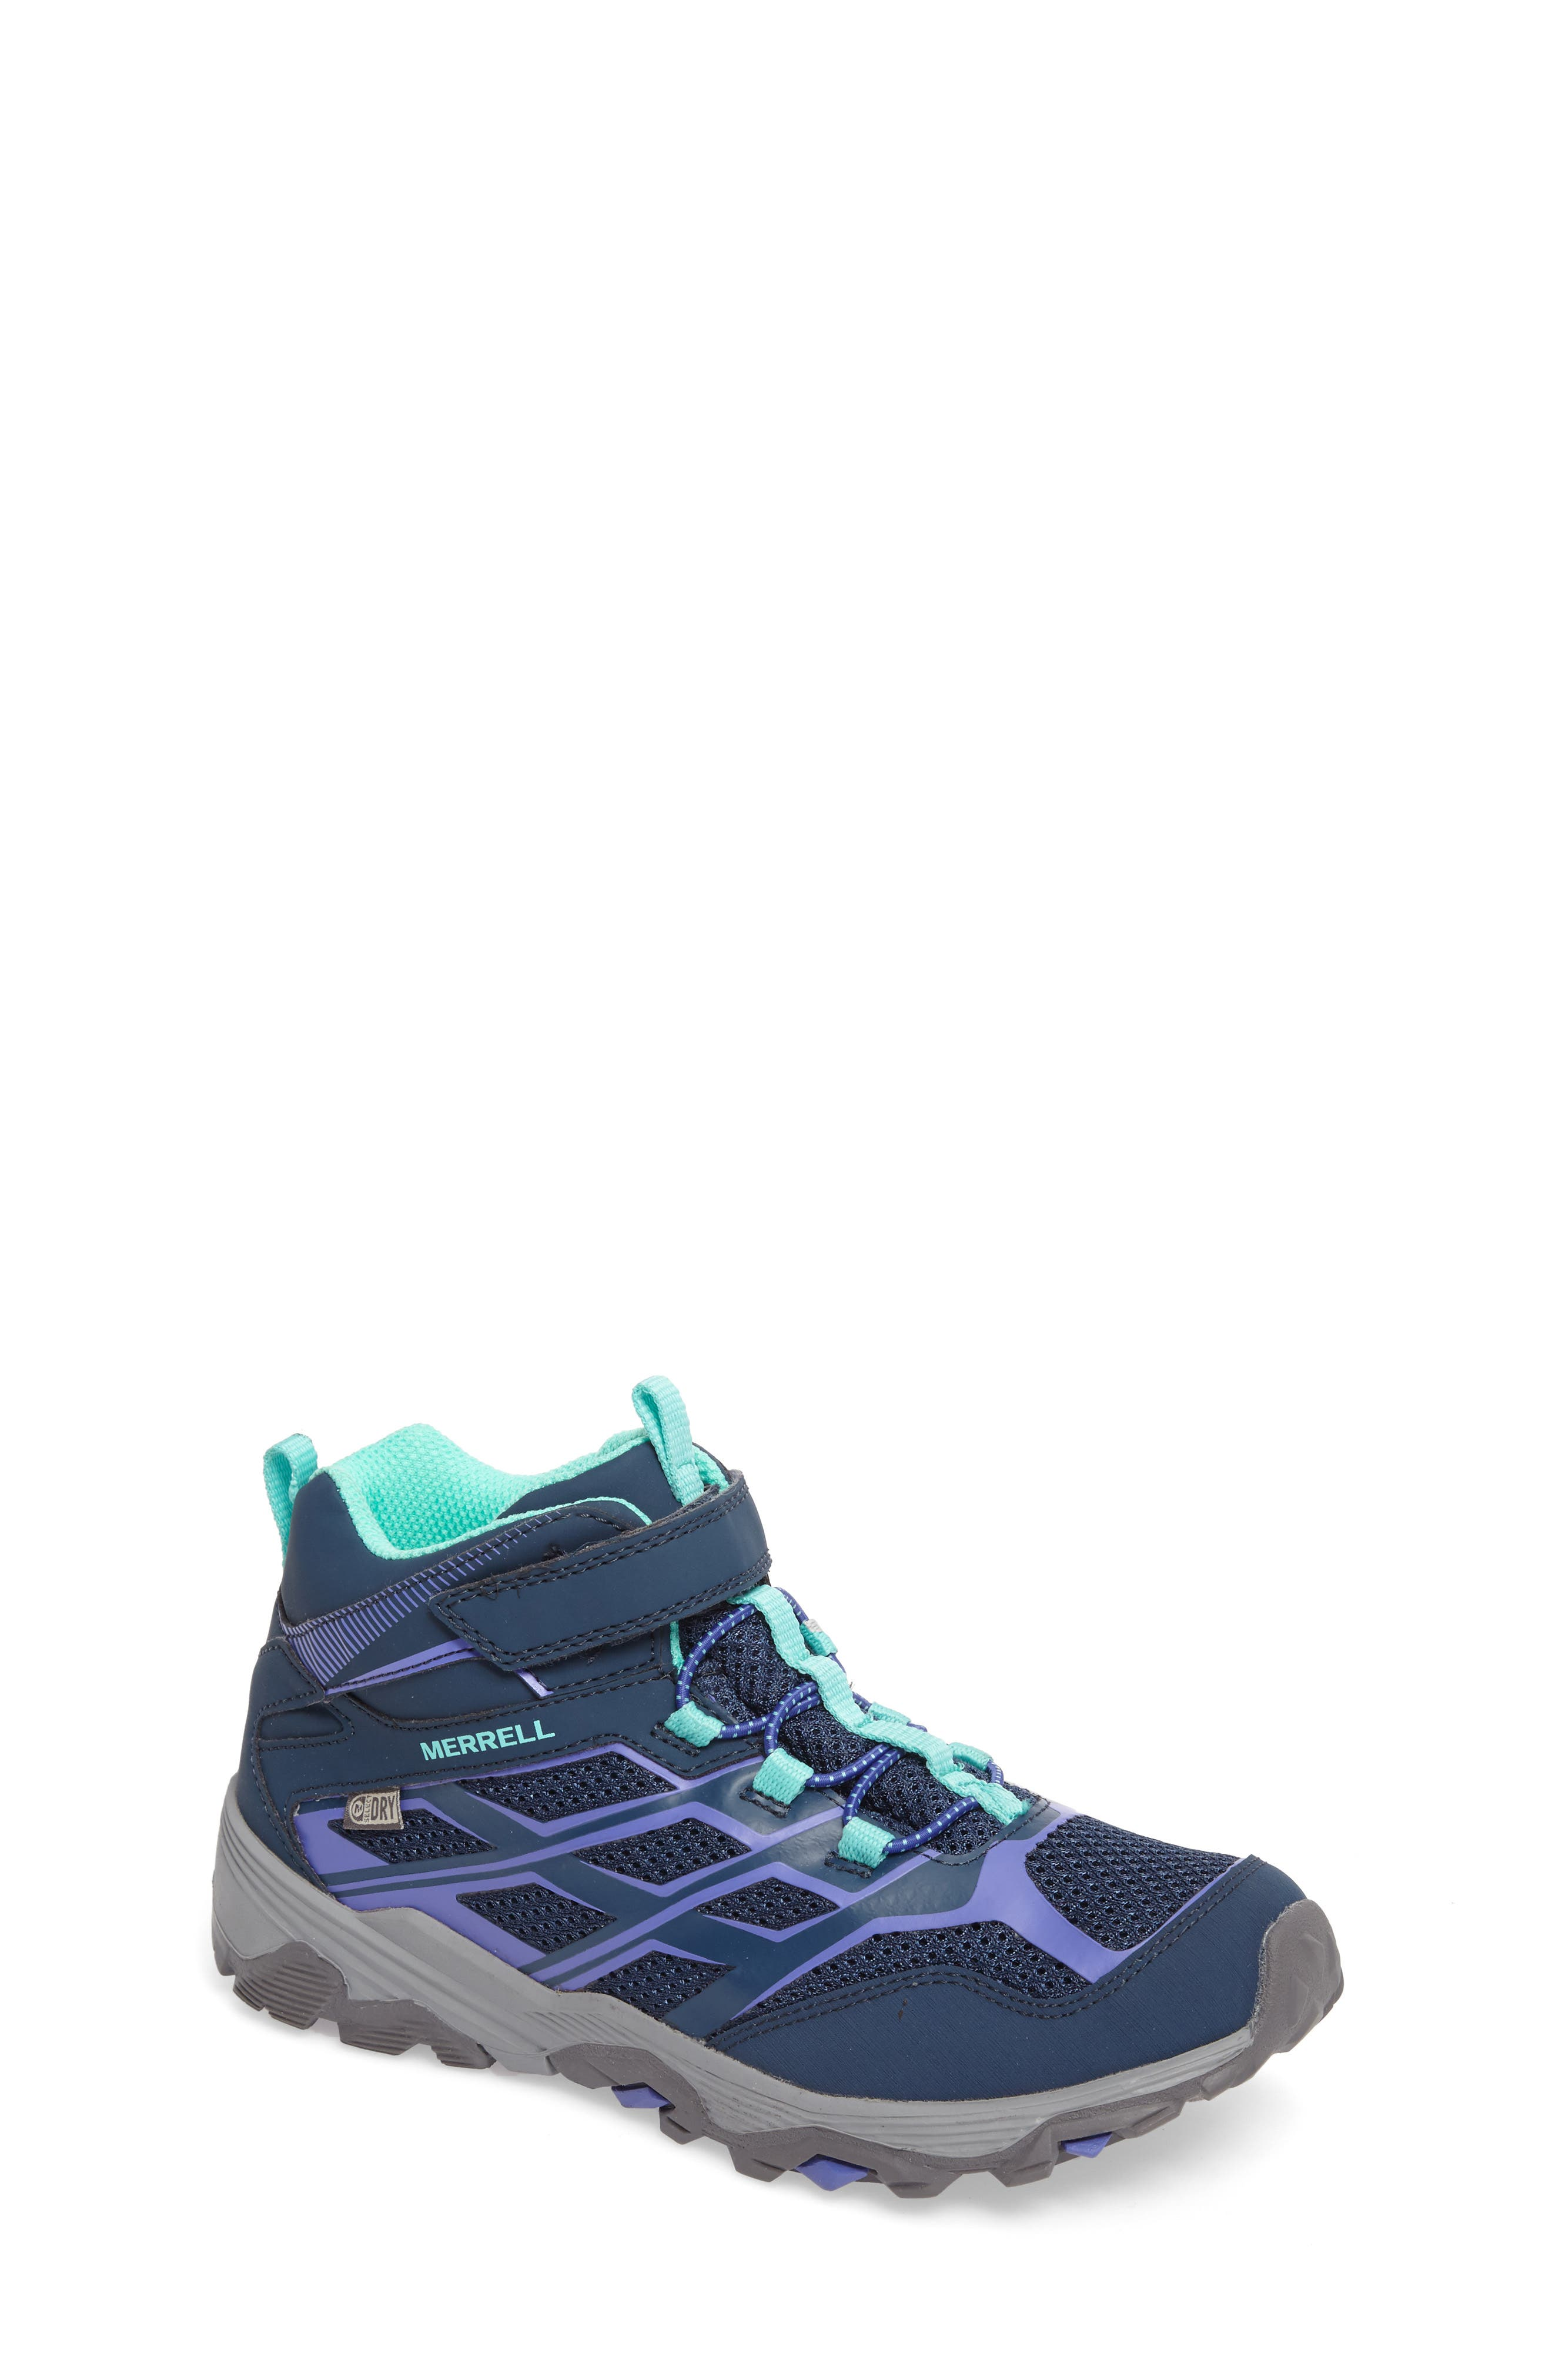 Moab FST Polar Mid Insulated Waterproof Sneaker Boot,                         Main,                         color, 410